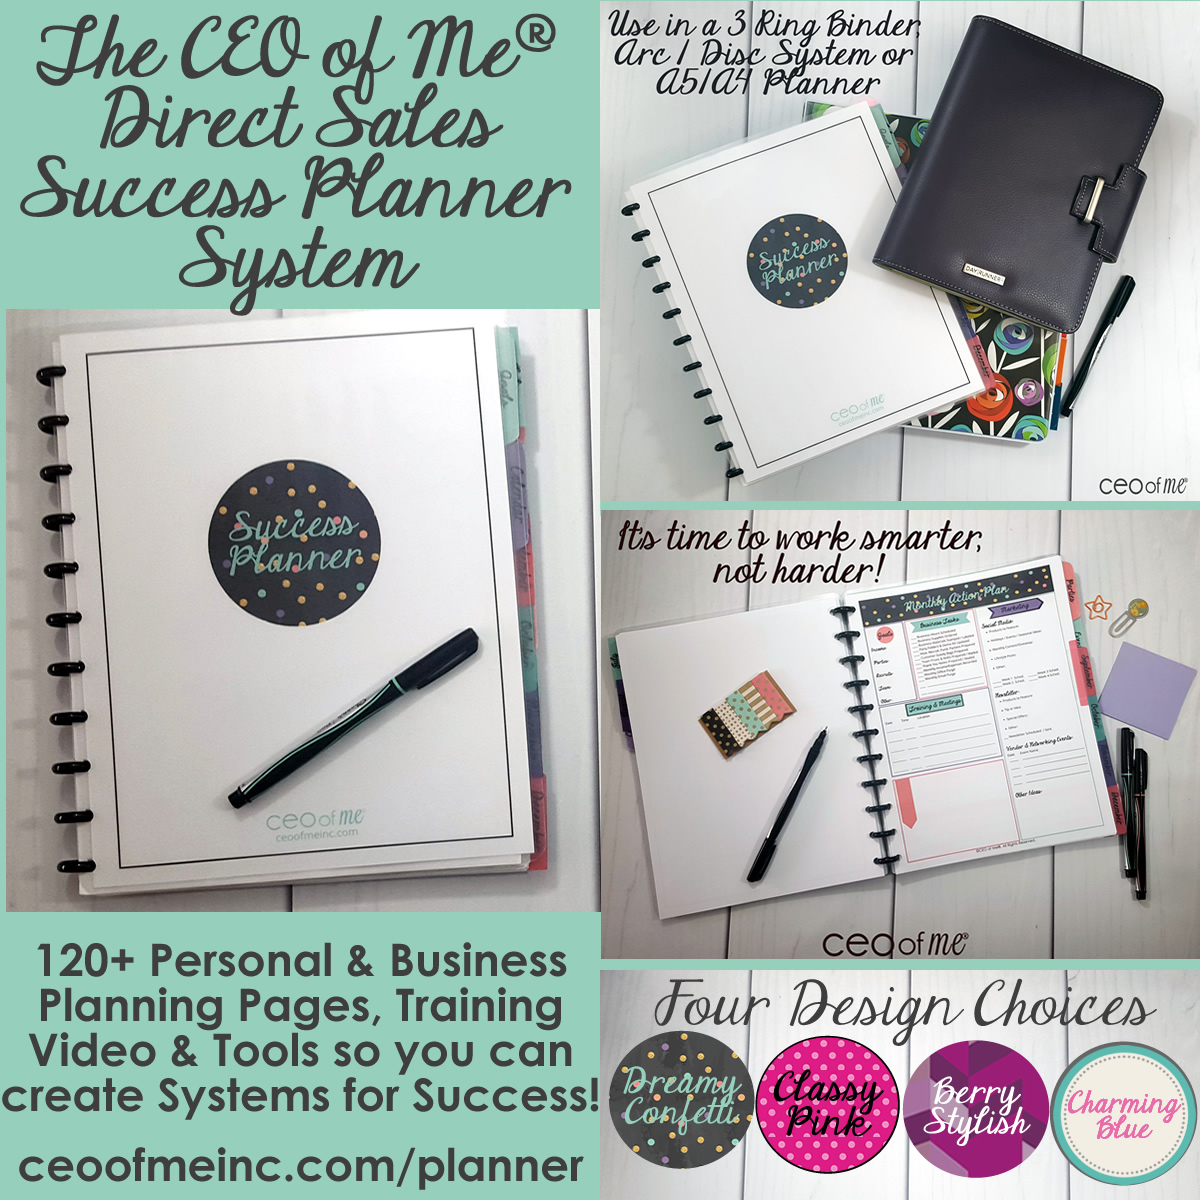 I love Planners! Here's my favorite for direct sales: